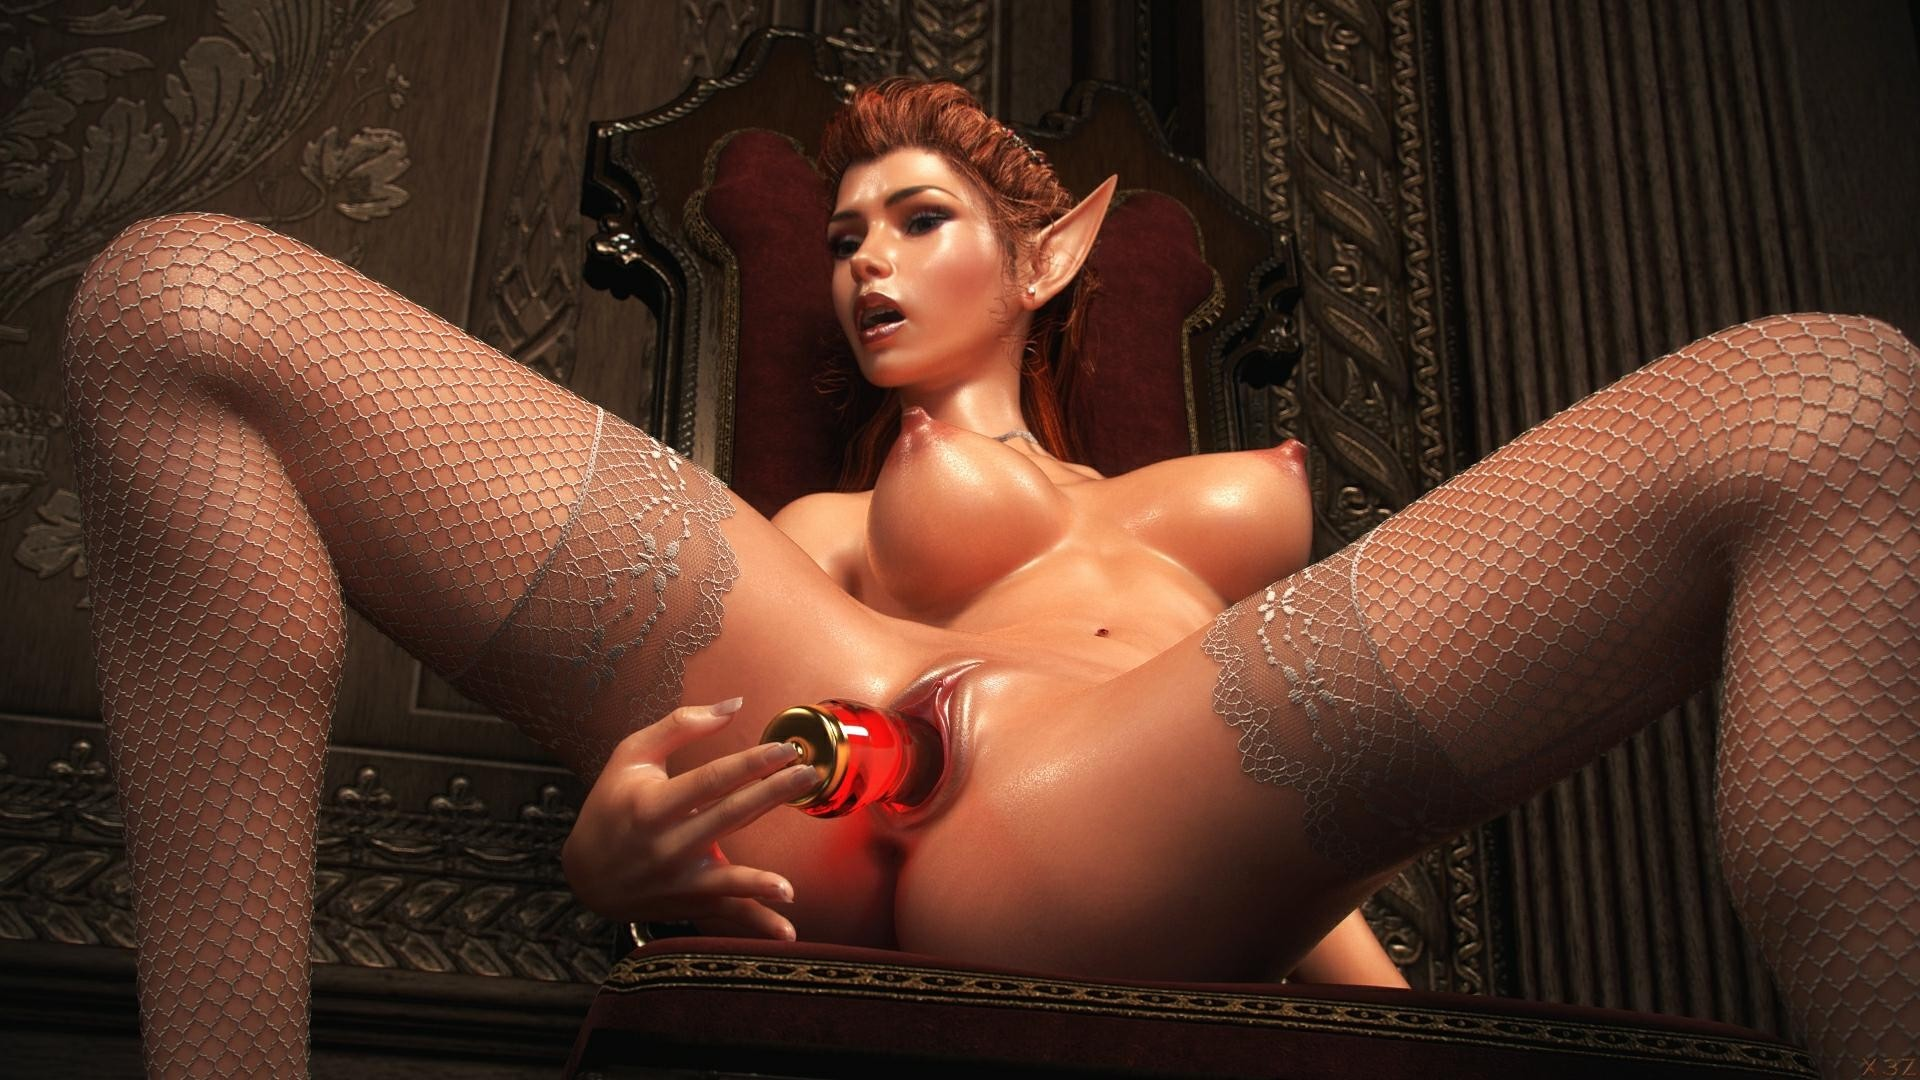 Female sex fantasy outfit